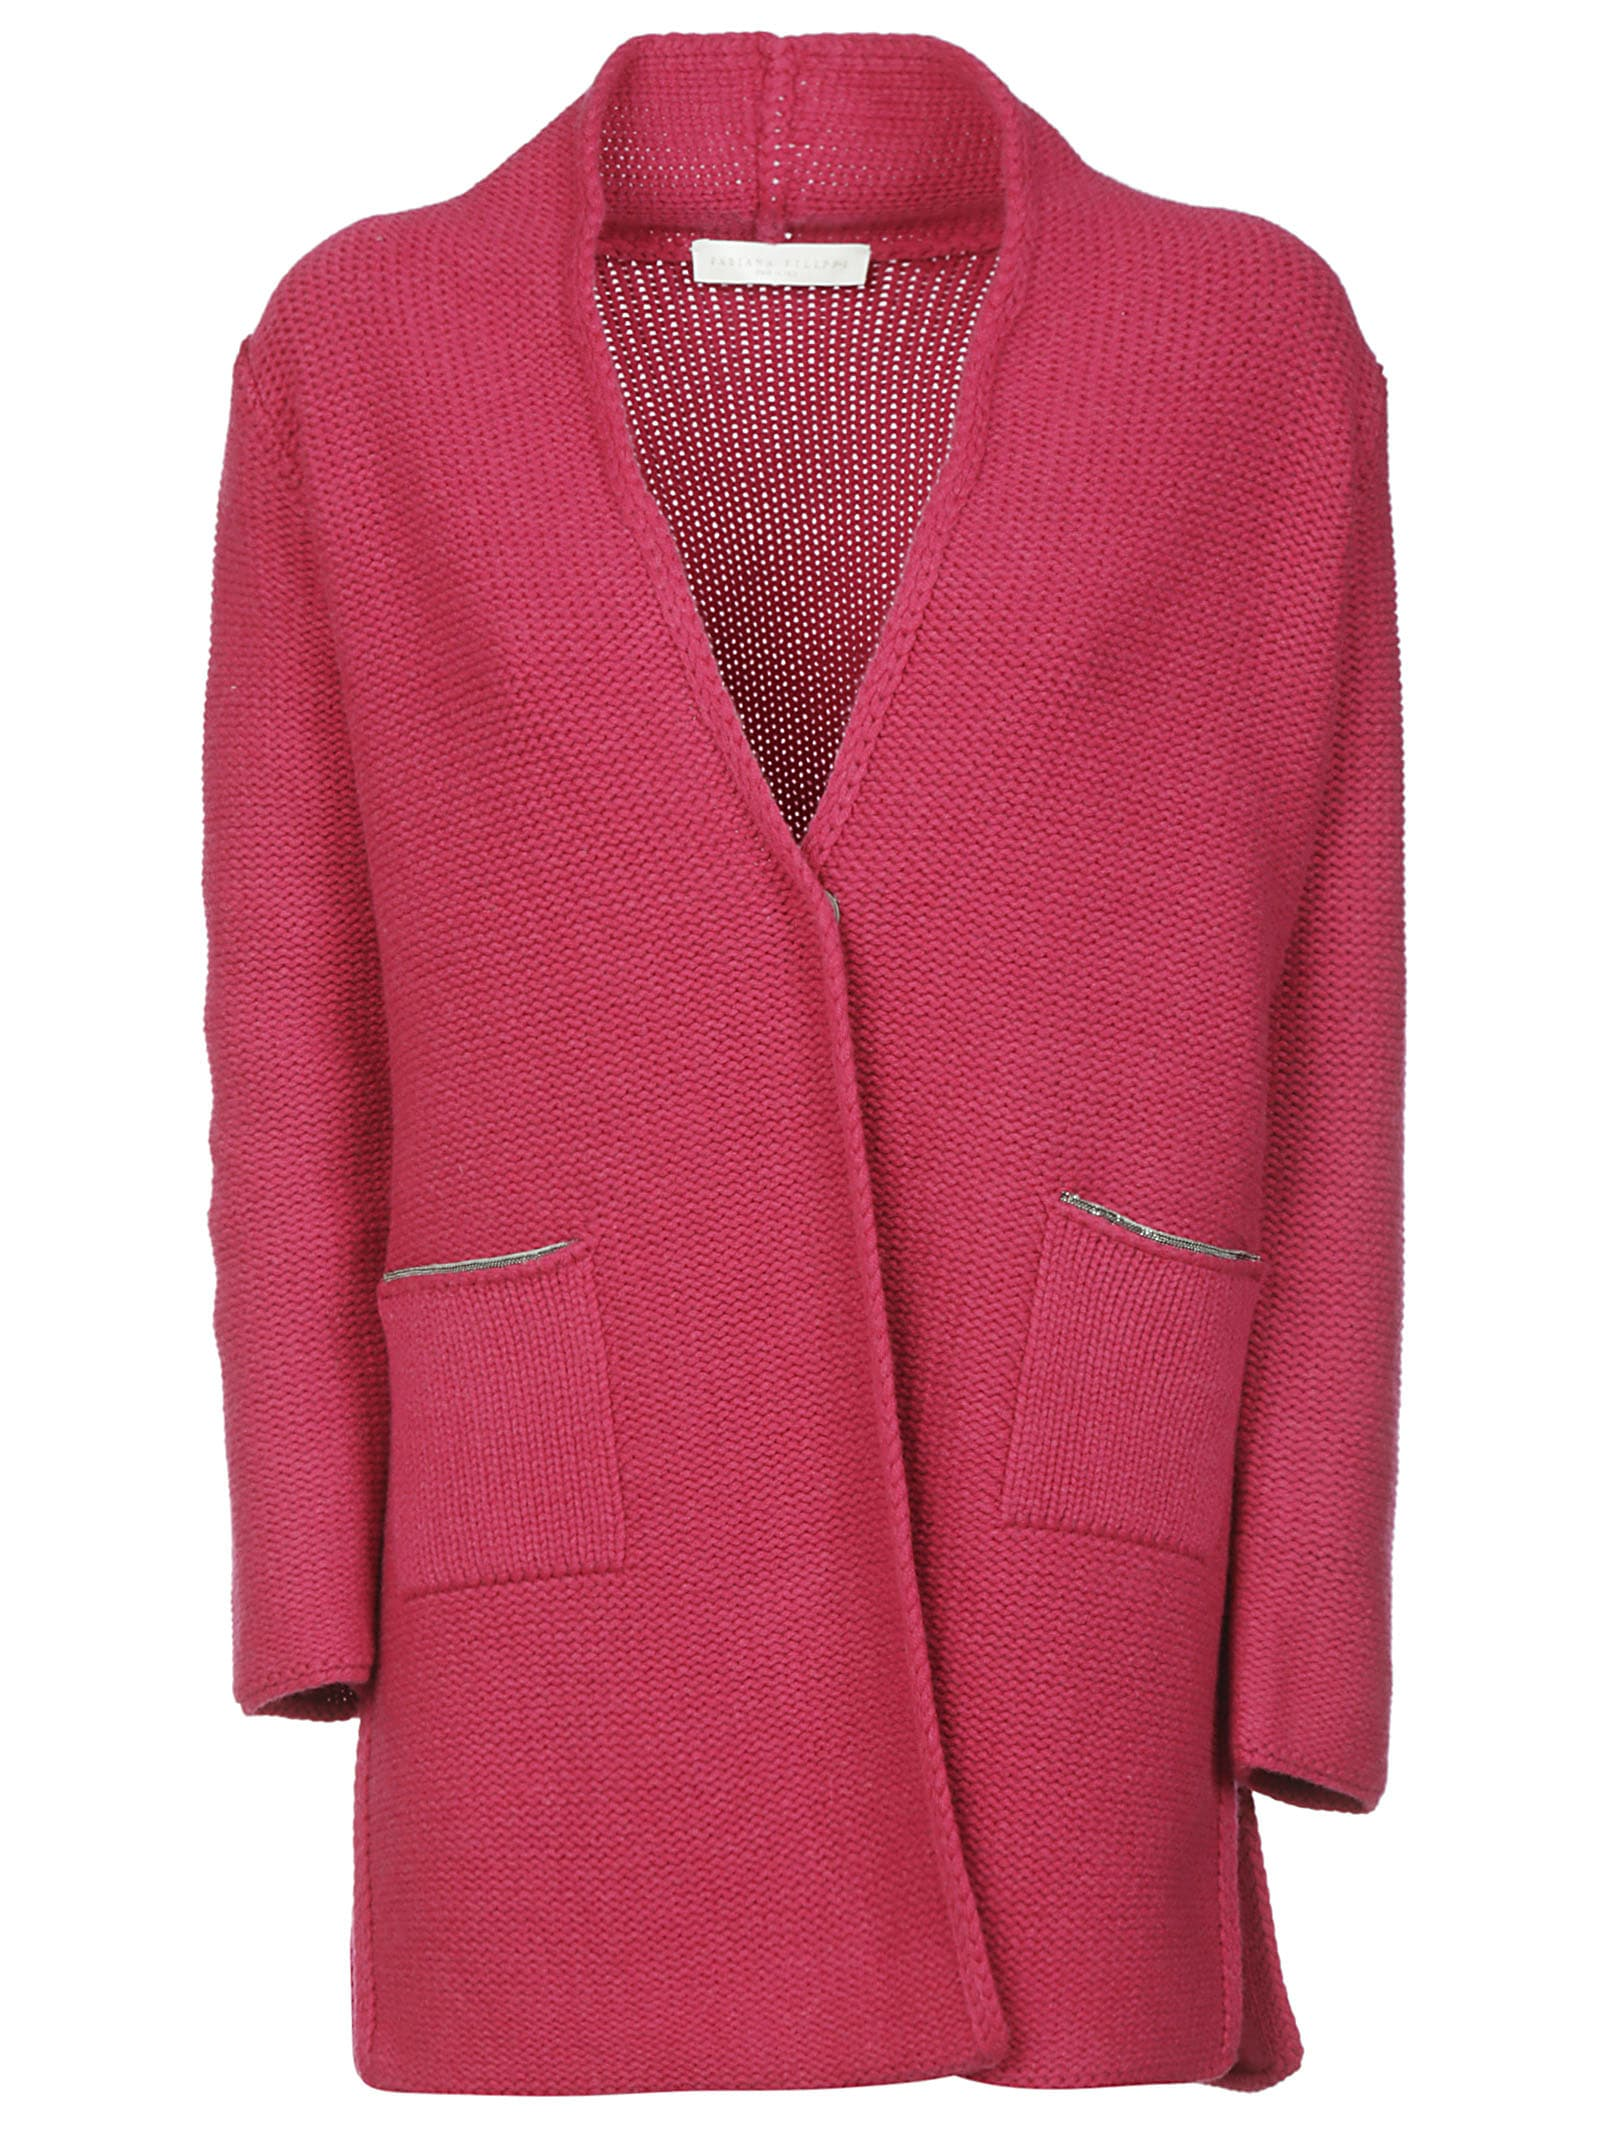 Photo of  Fabiana Filippi Knitted Cardi Coat- shop Fabiana Filippi jackets online sales